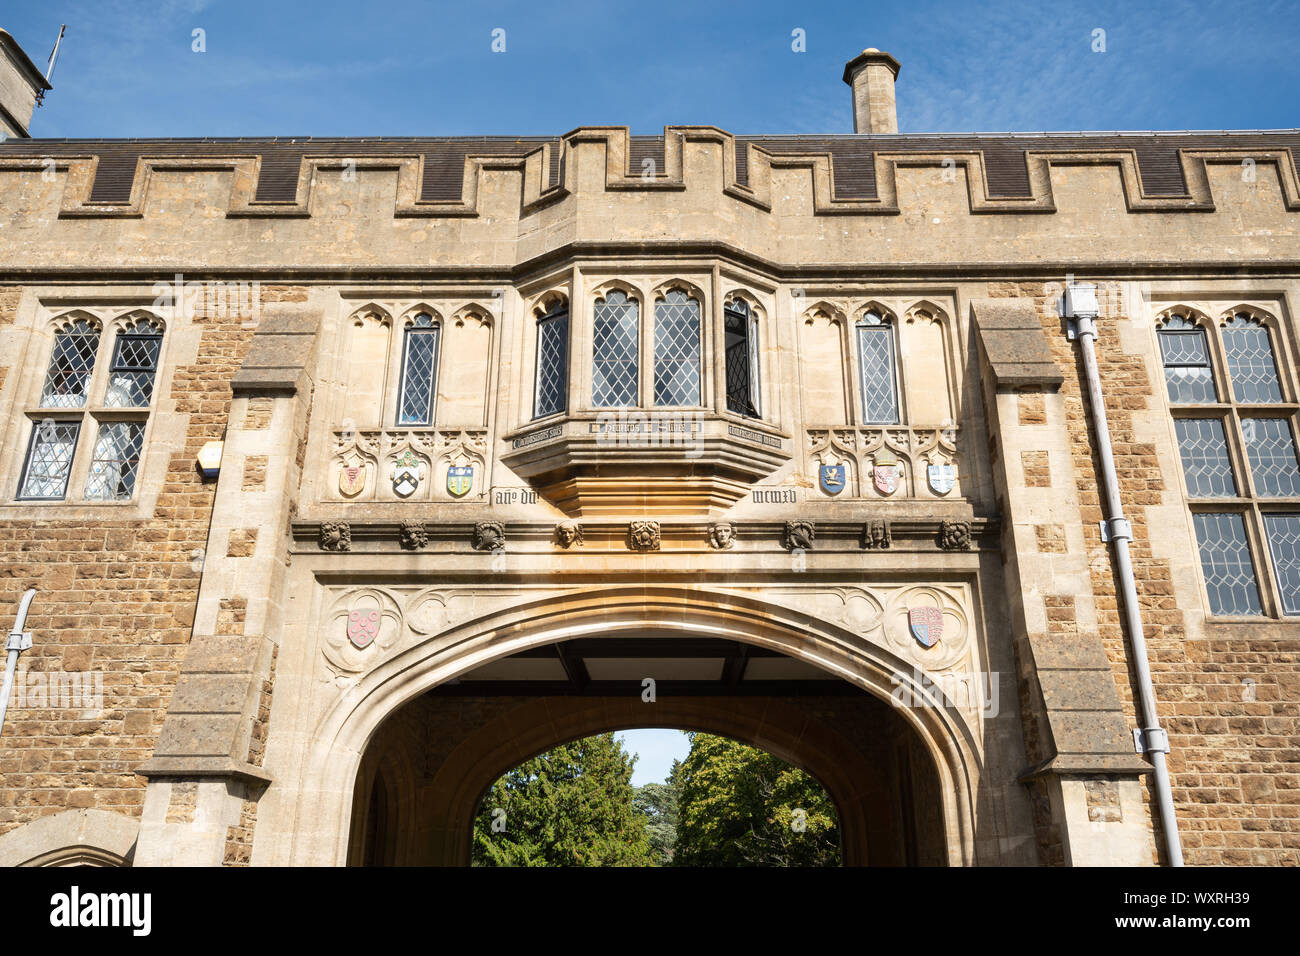 charterhouse-school-a-historic-boarding-school-in-surrey-this-building-is-brooke-hall-used-as-a-common-room-for-staff-WXRH39.jpg